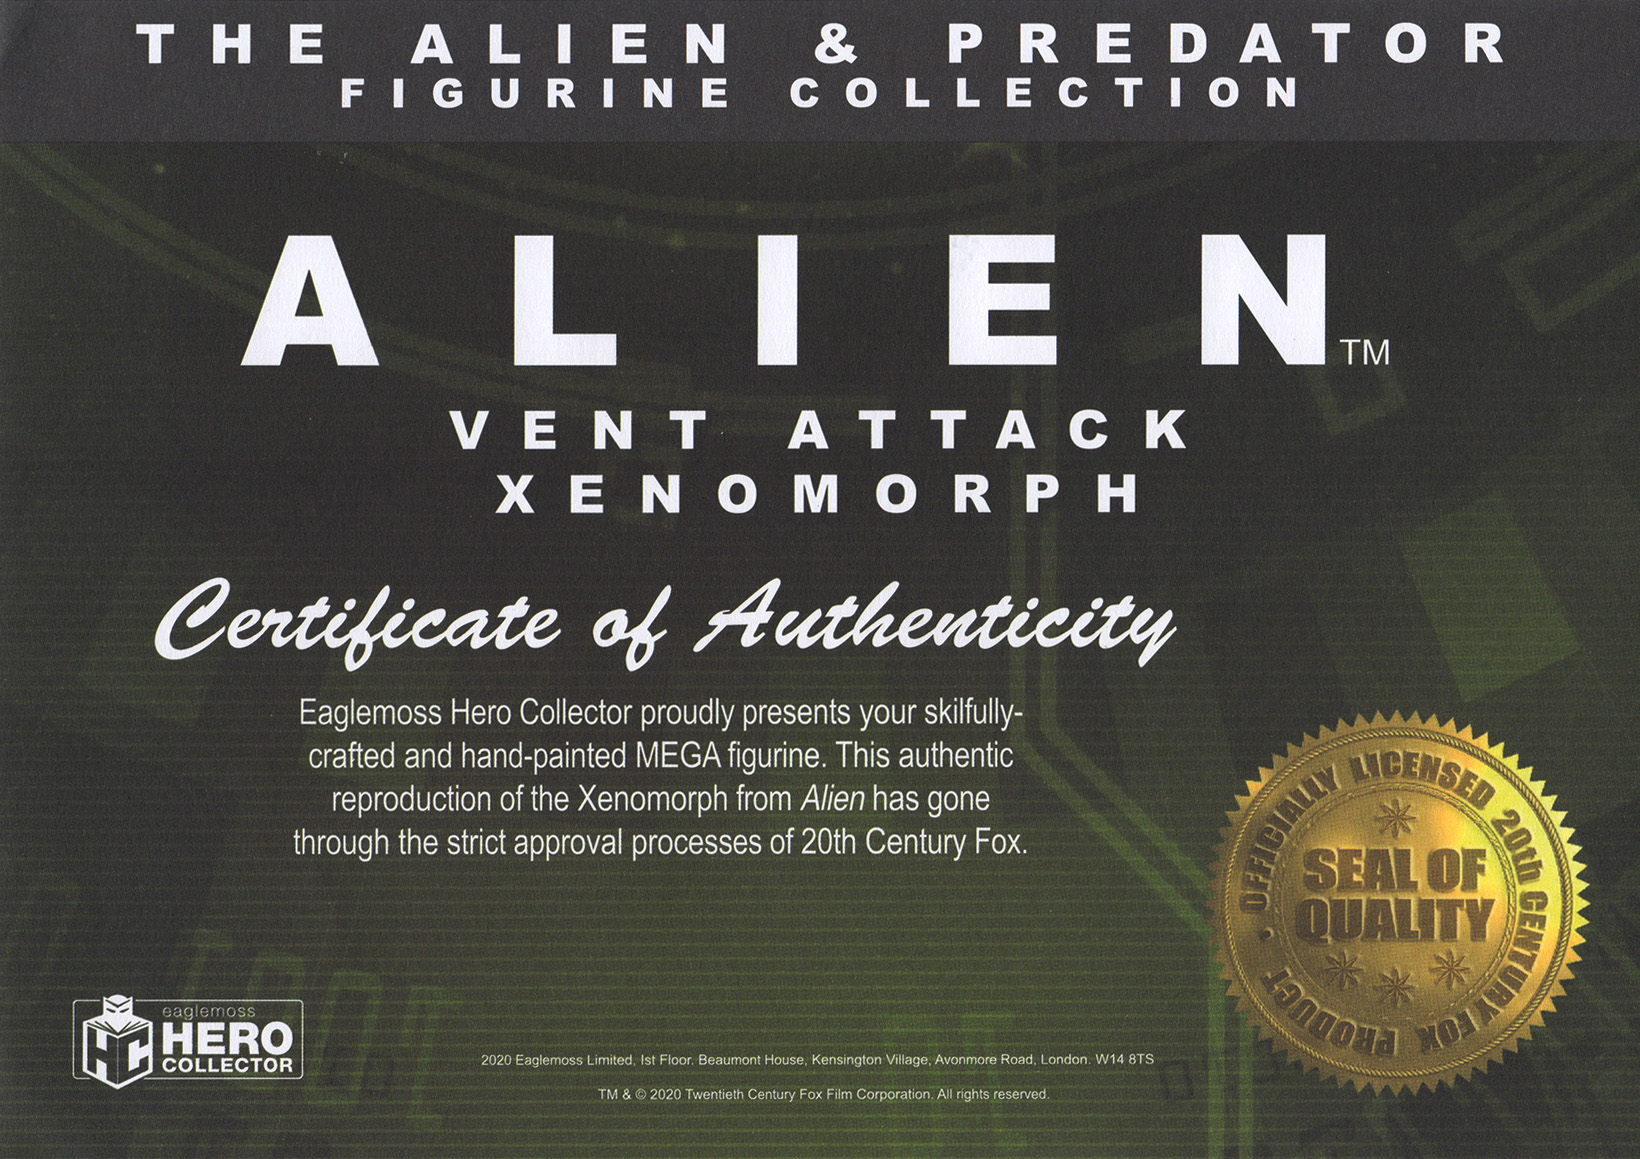 Eaglemoss Alien & Predator Magazine Issue Mega 8 Certificate